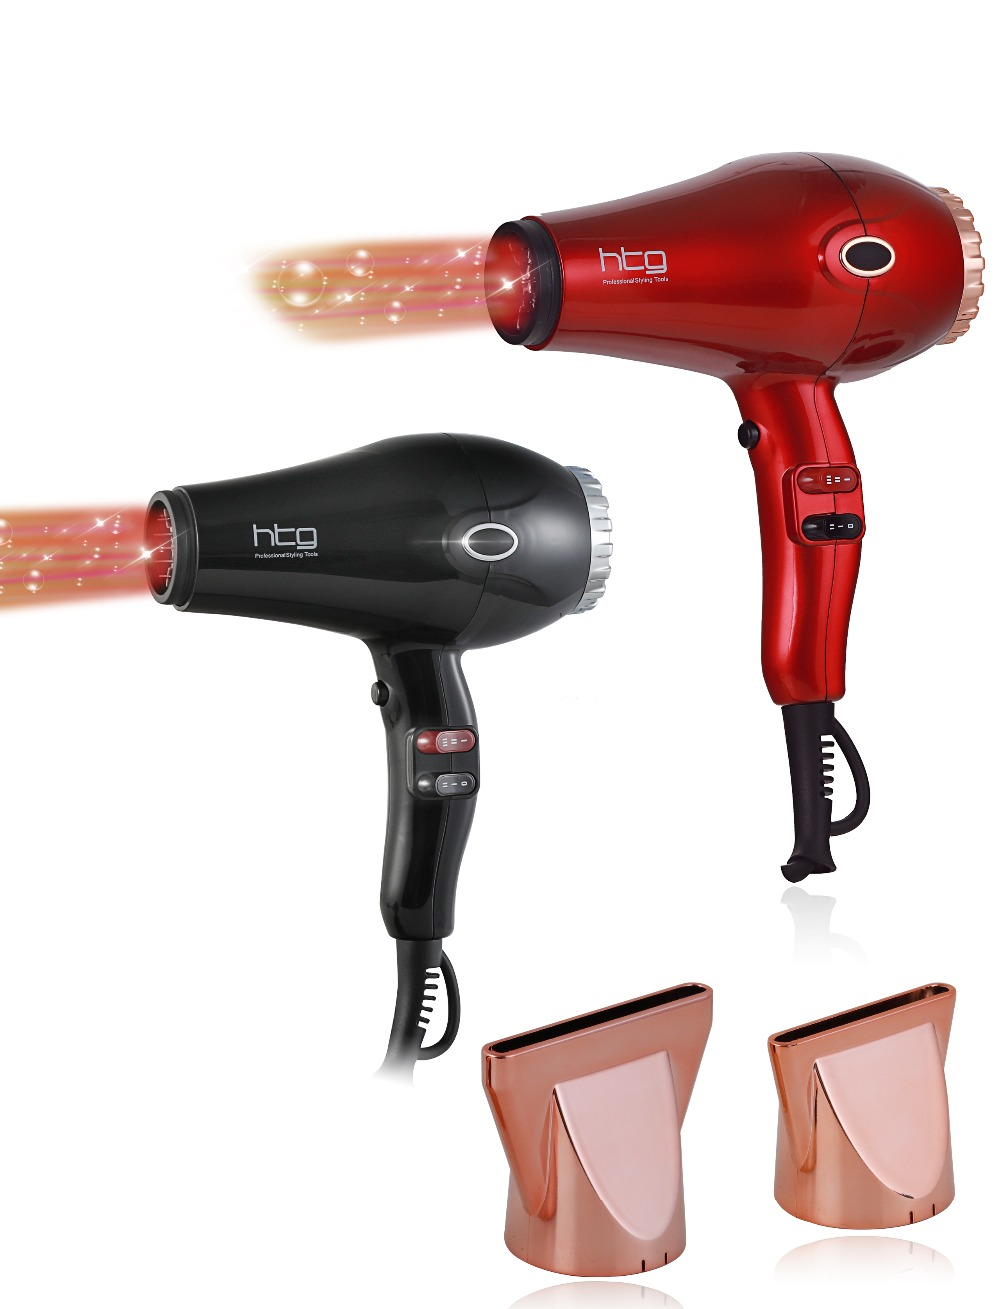 RUSSIA Ship  HTG 2300W powerful professional Hair Dryer Blow Dryer Lightweight Negative ion infrared Hair Dryer 110V/240V RUSSIA Ship  HTG 2300W powerful professional Hair Dryer Blow Dryer Lightweight Negative ion infrared Hair Dryer 110V/240V